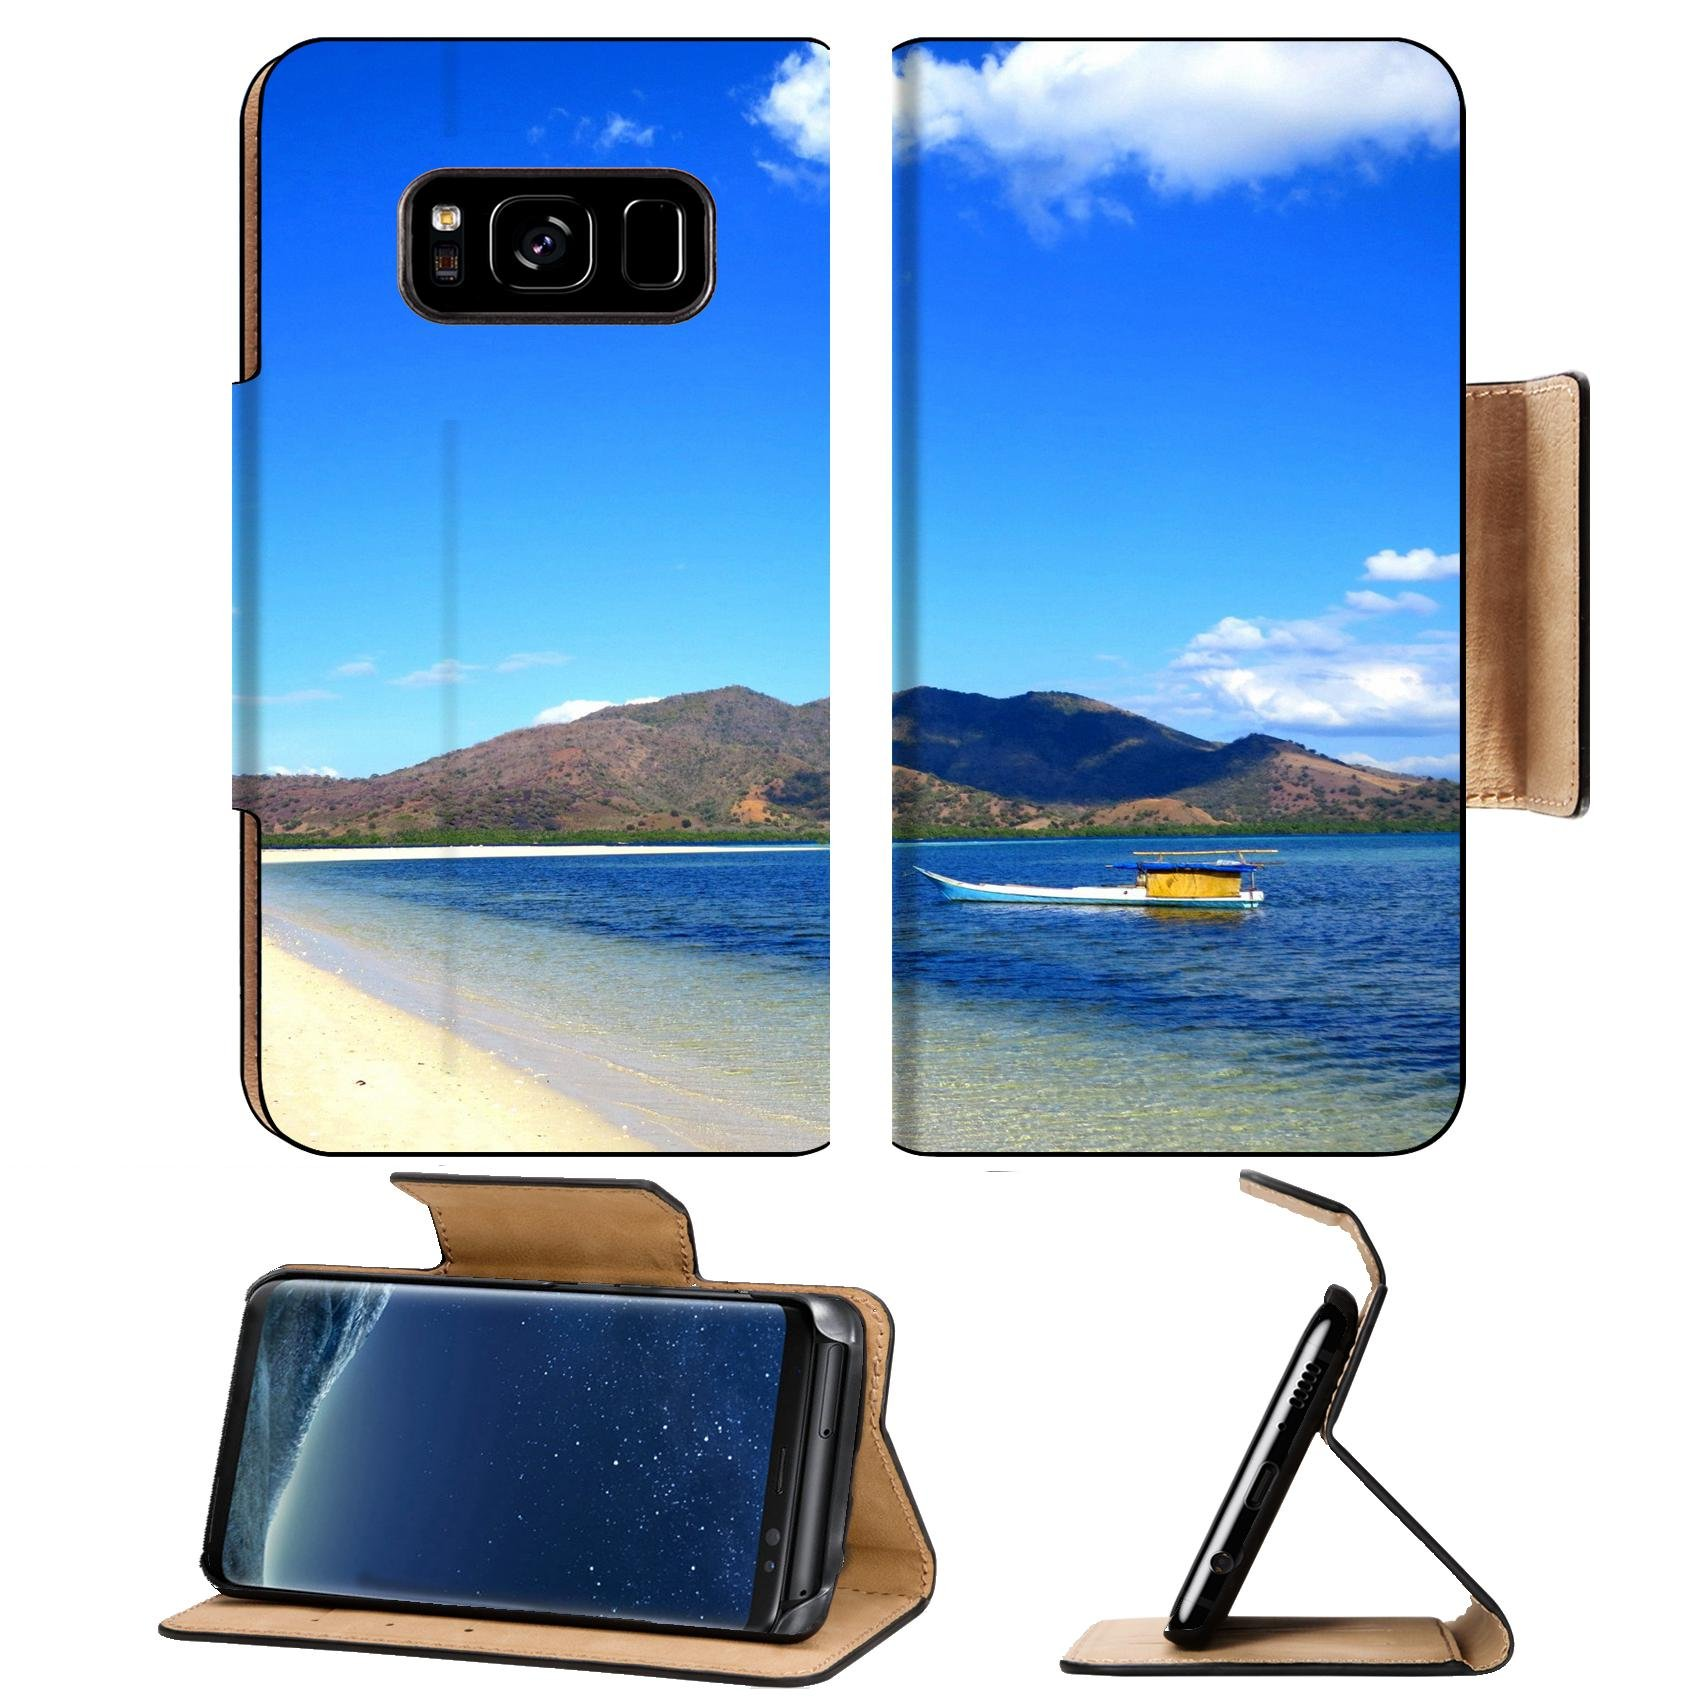 MSD Premium Samsung Galaxy S8 Flip Pu Leather Wallet Case IMAGE of beach sand sea summer blue water vacation sky landscape island travel ocean nature paradise tropical by MSD (Image #1)